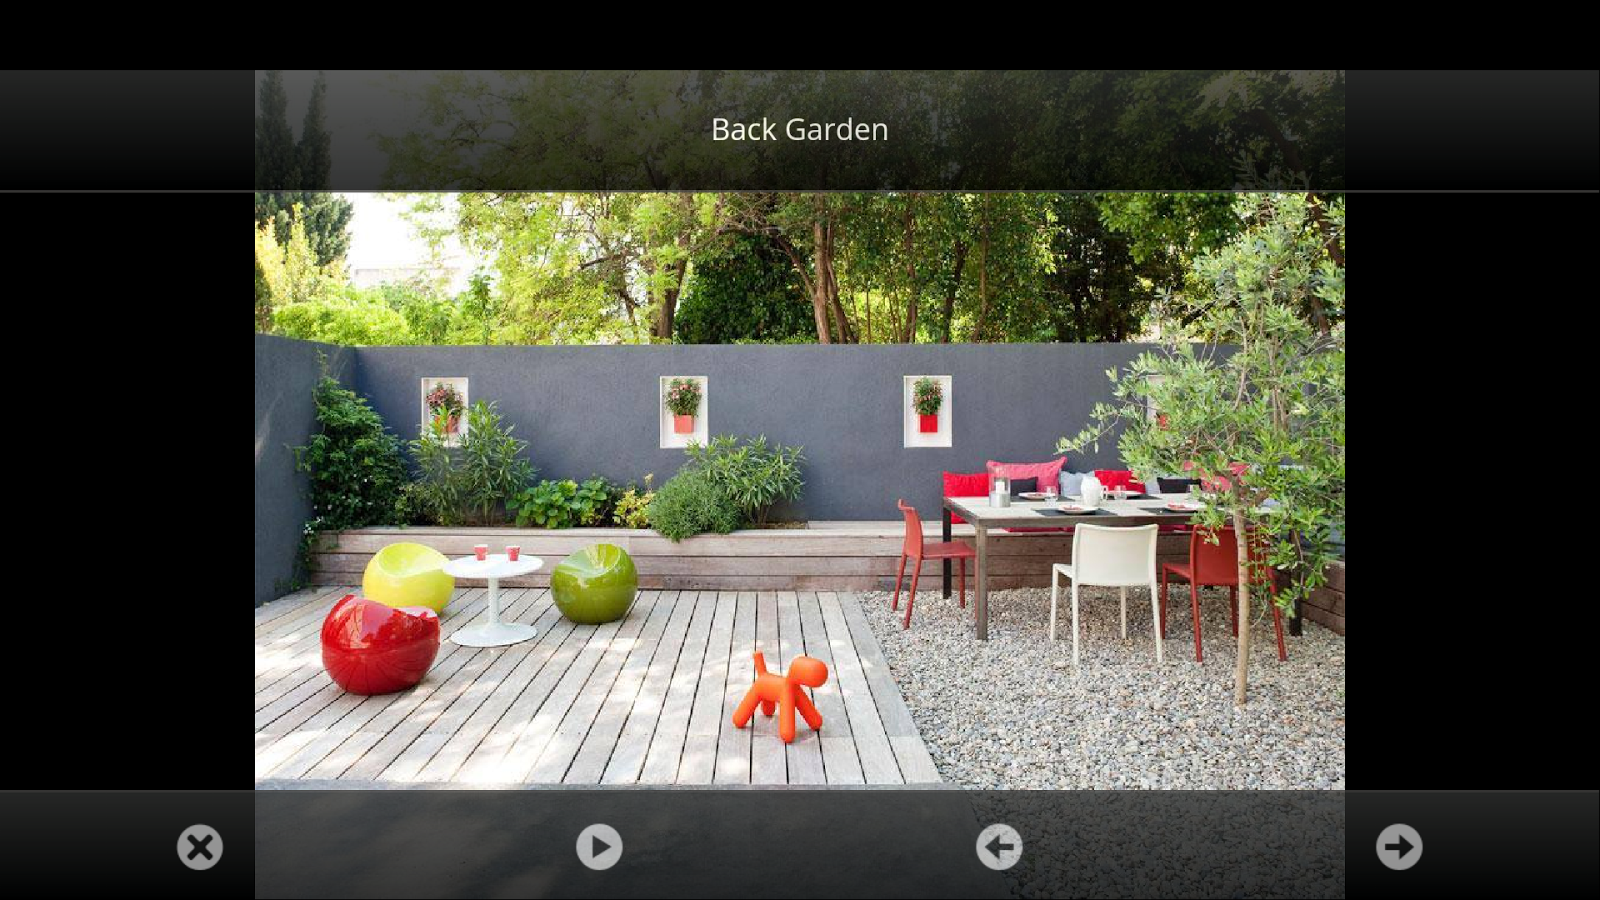 gardens walkways and more rock garden water garden modern garden get landscaping ideas and inspiration from our gardening apps to design your own